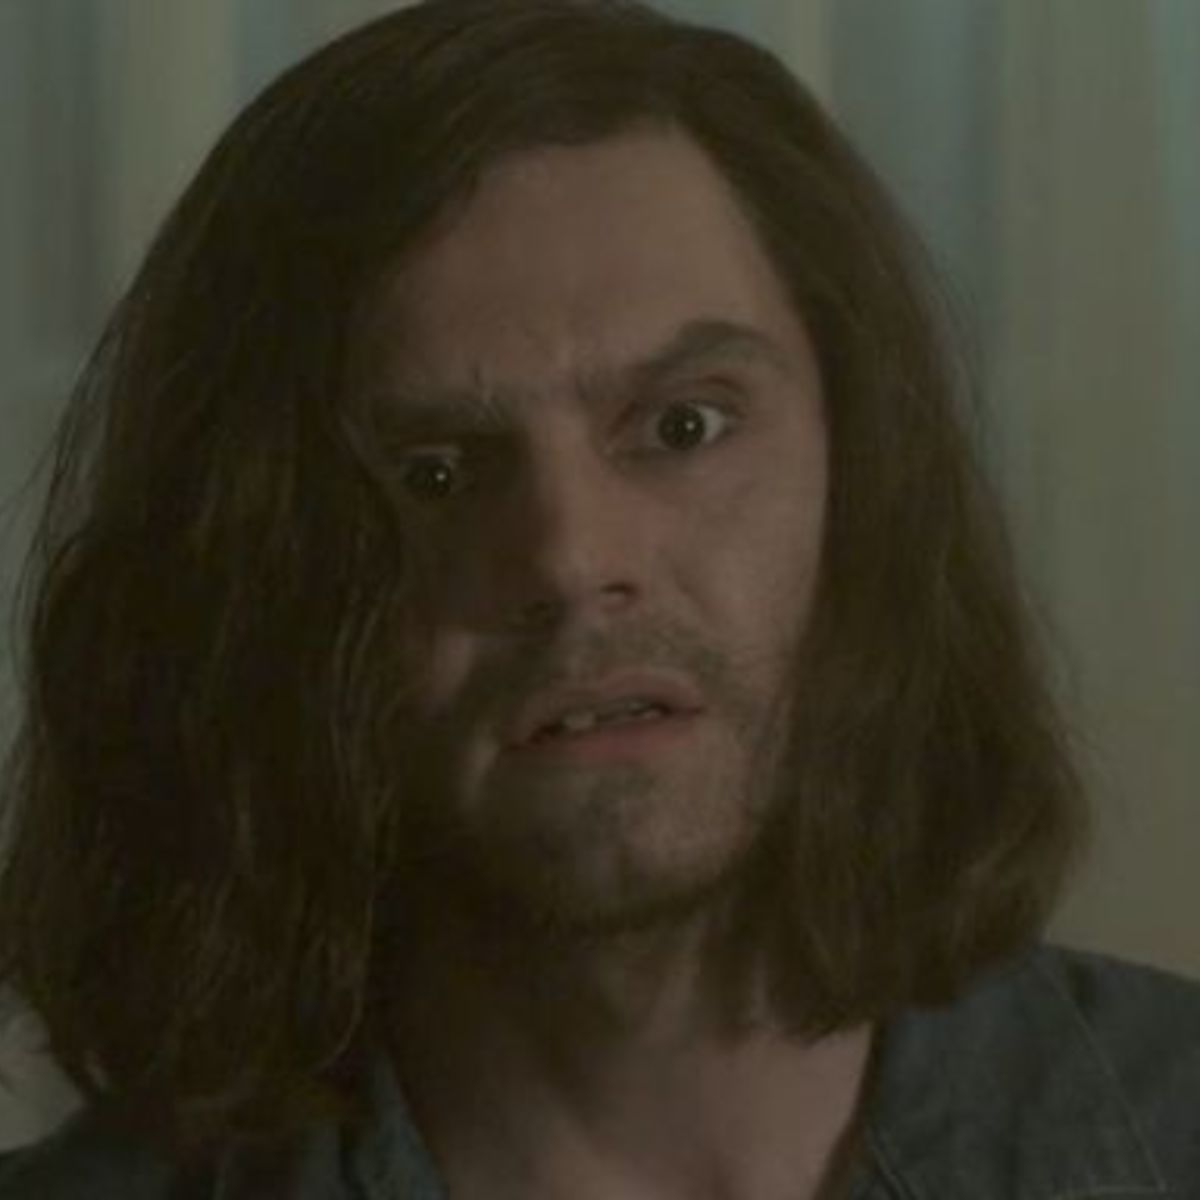 Kai Loses His Mind And Channels Charles Manson In This Weeks